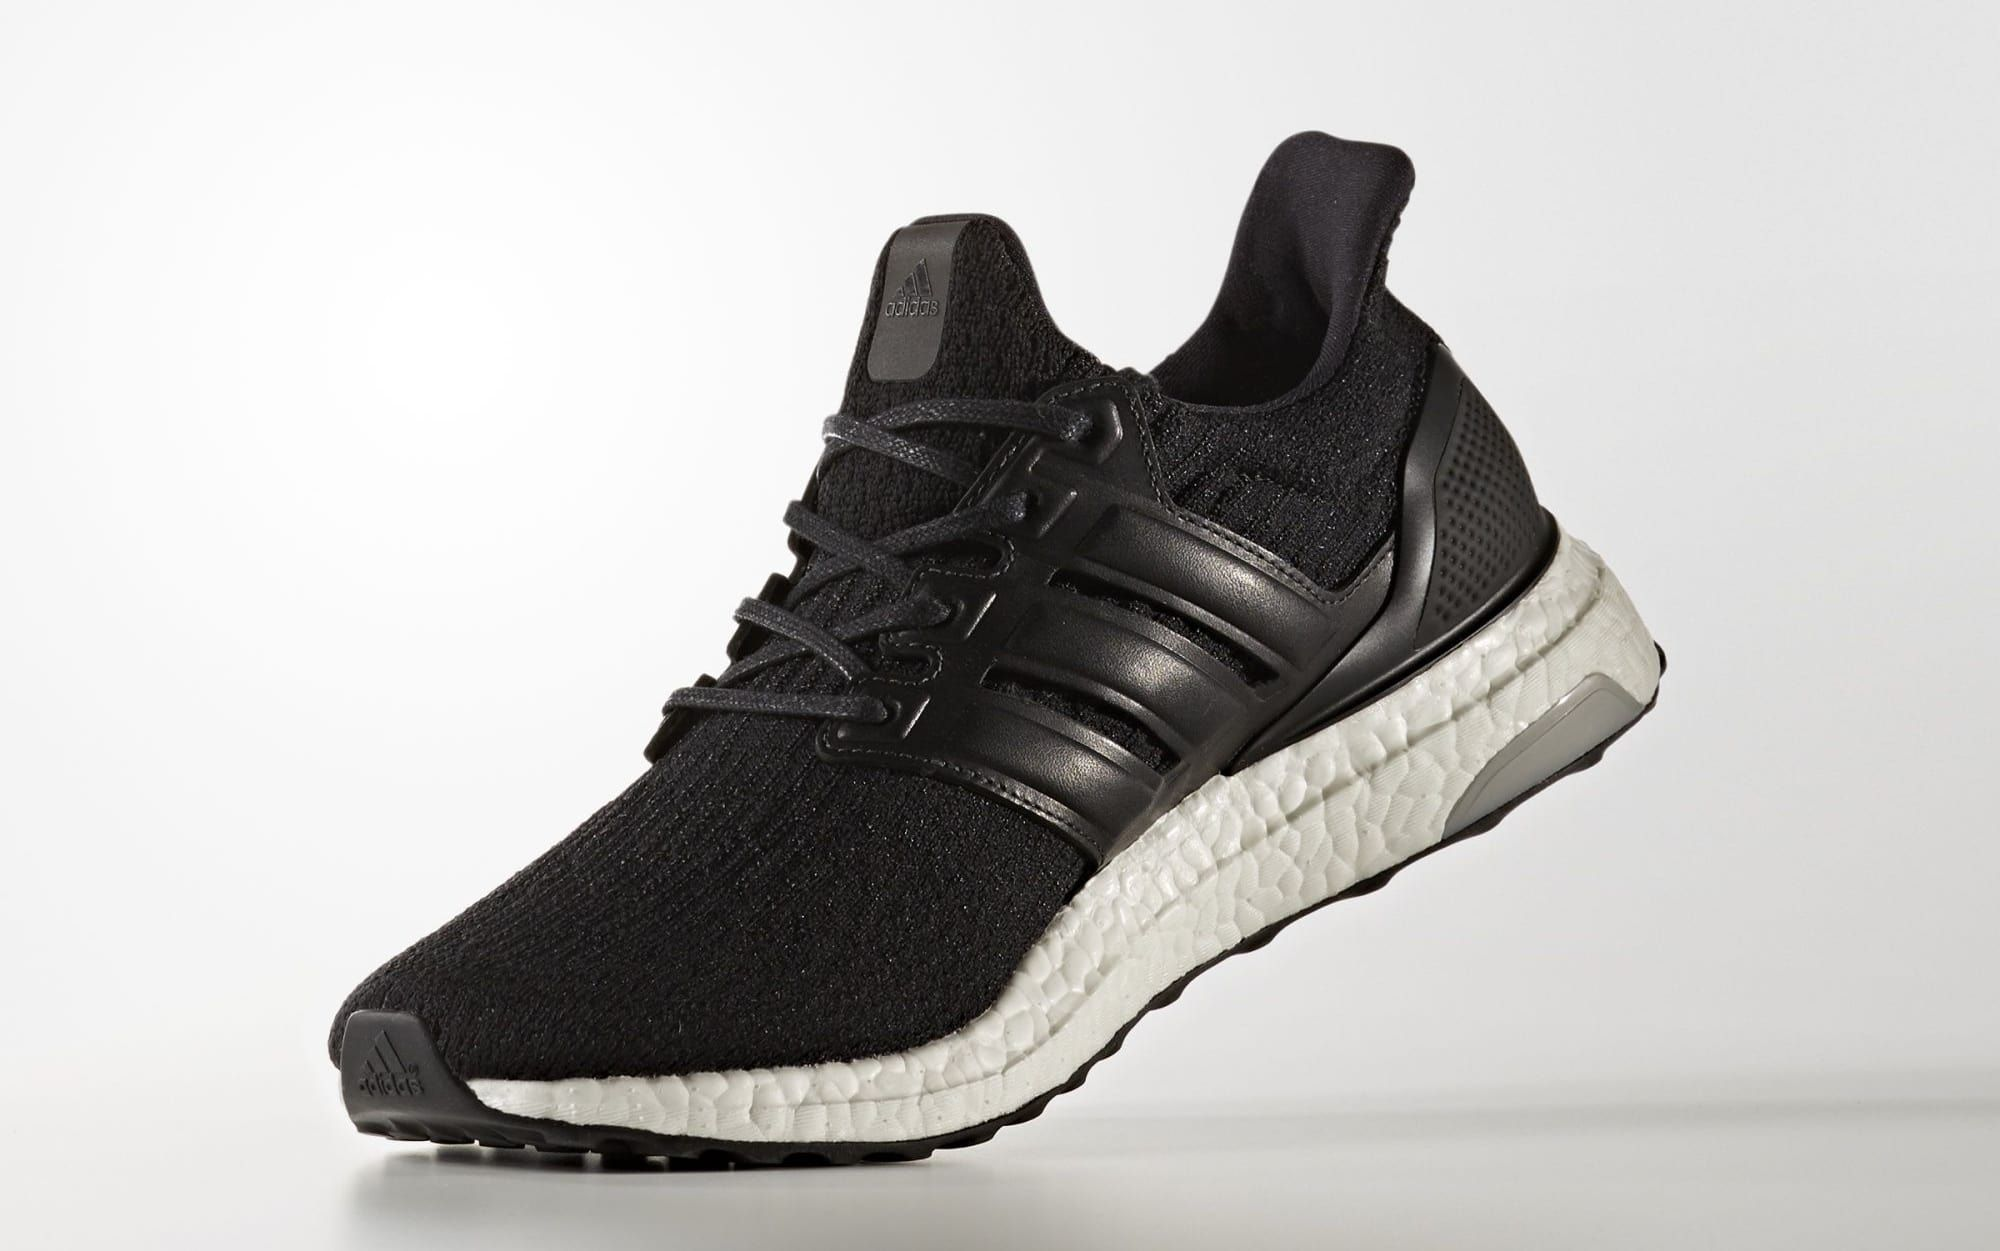 Black Adidas Ultra Boost Leather Cage